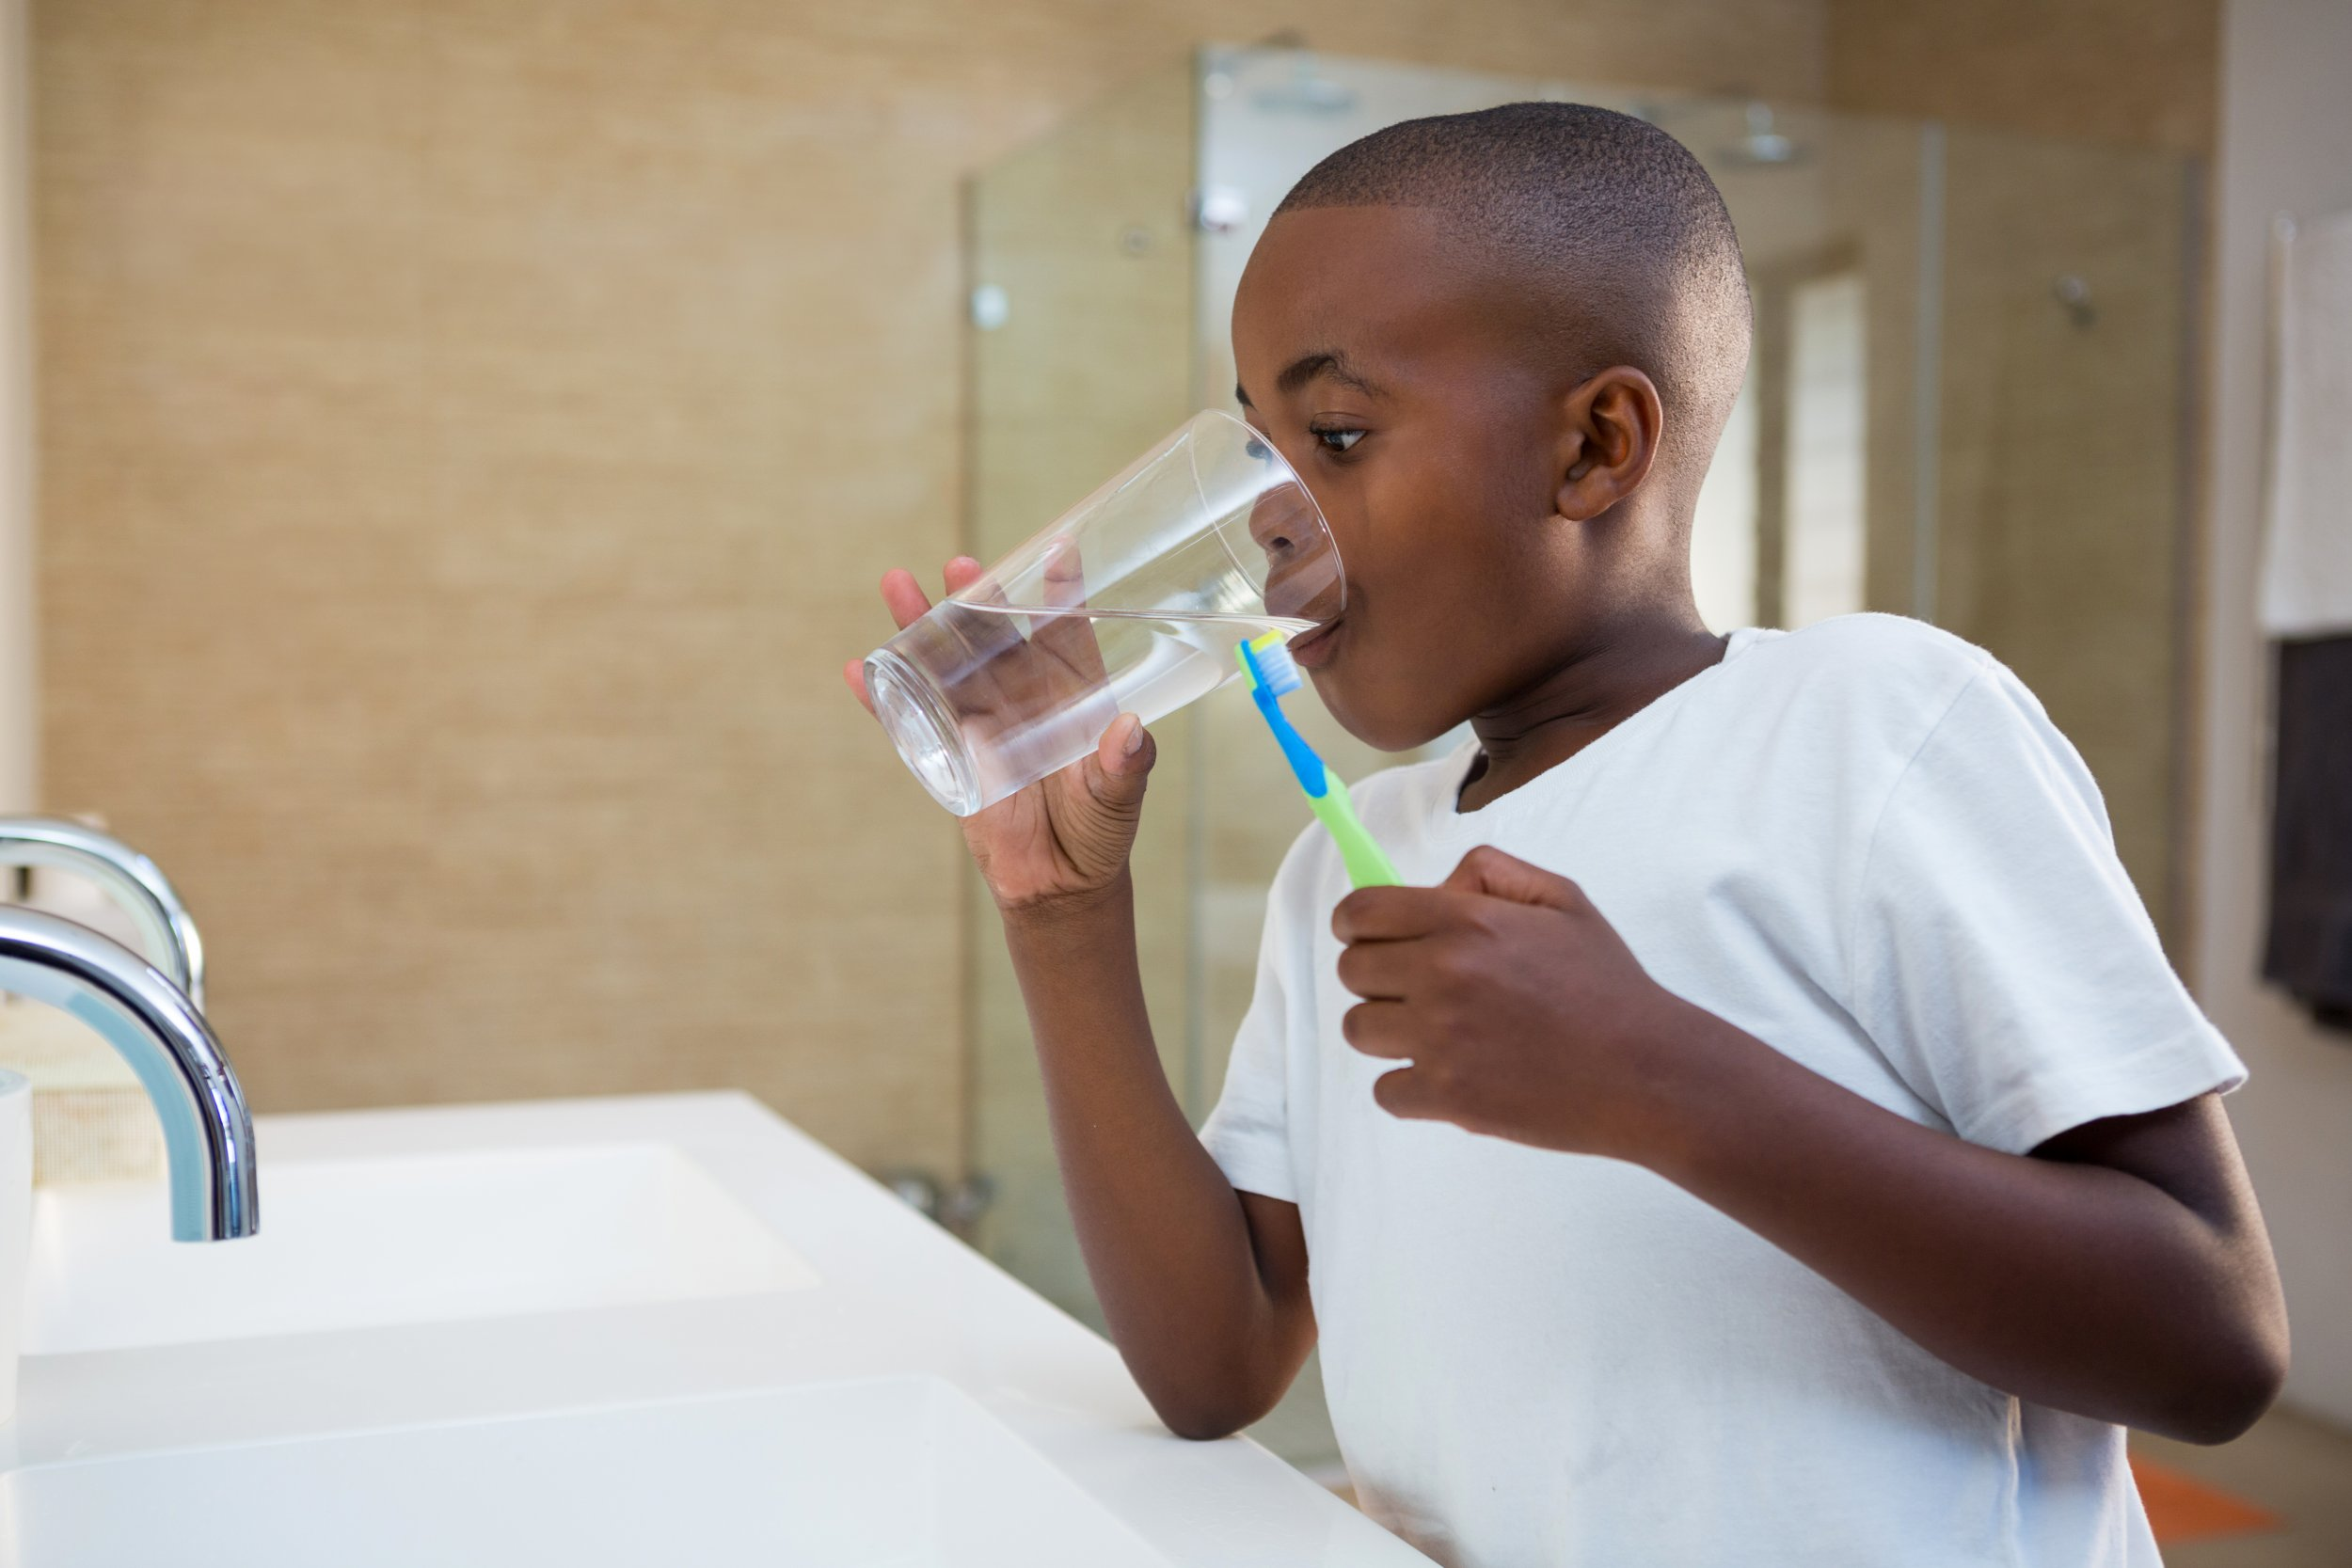 boy drinking water brushing teeth stock getty